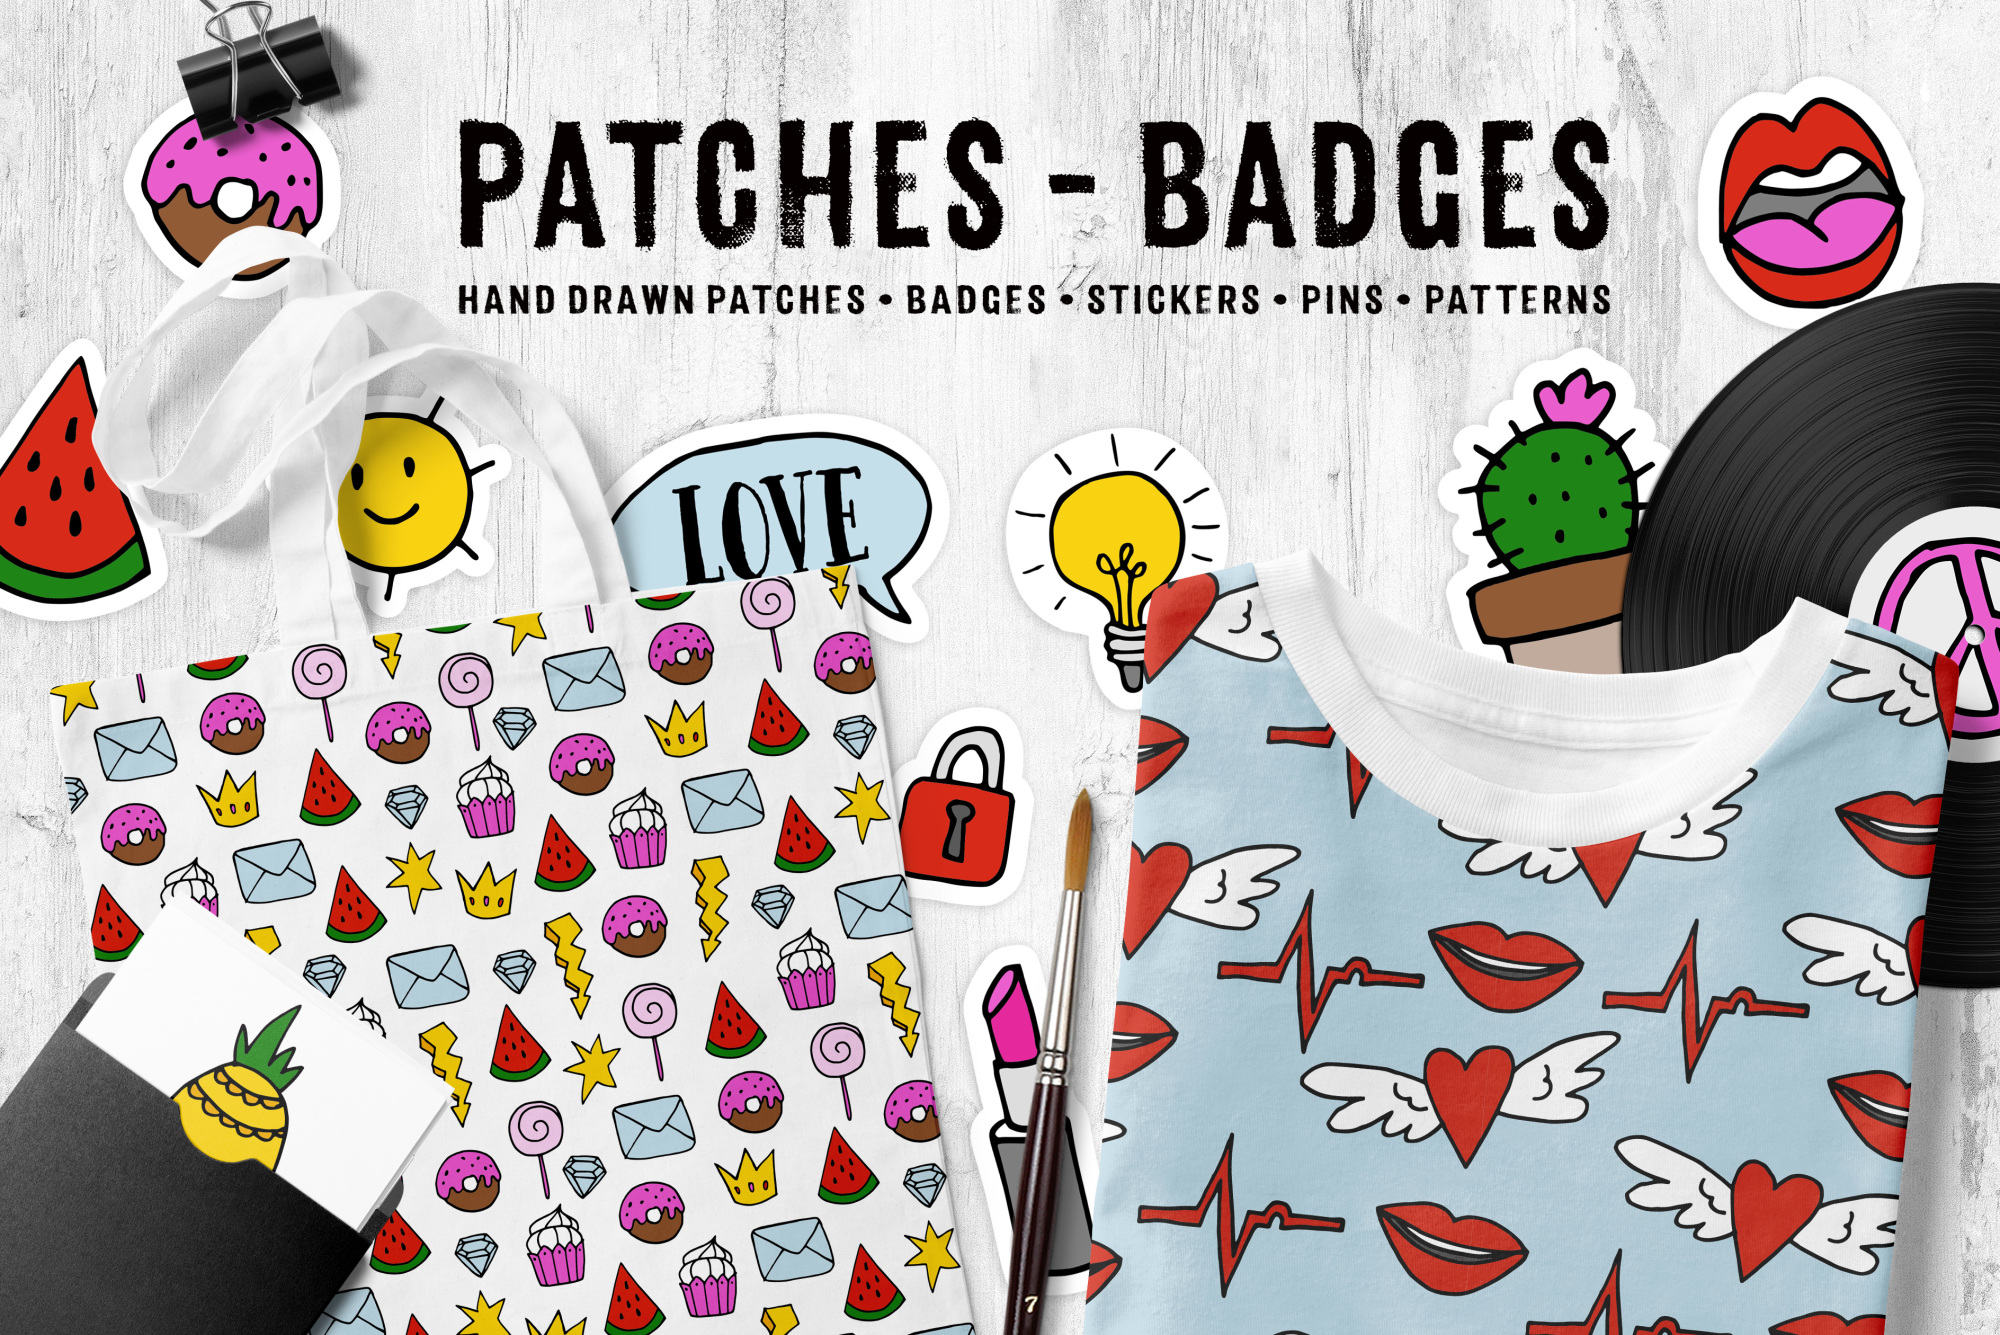 Patches - badges example image 3